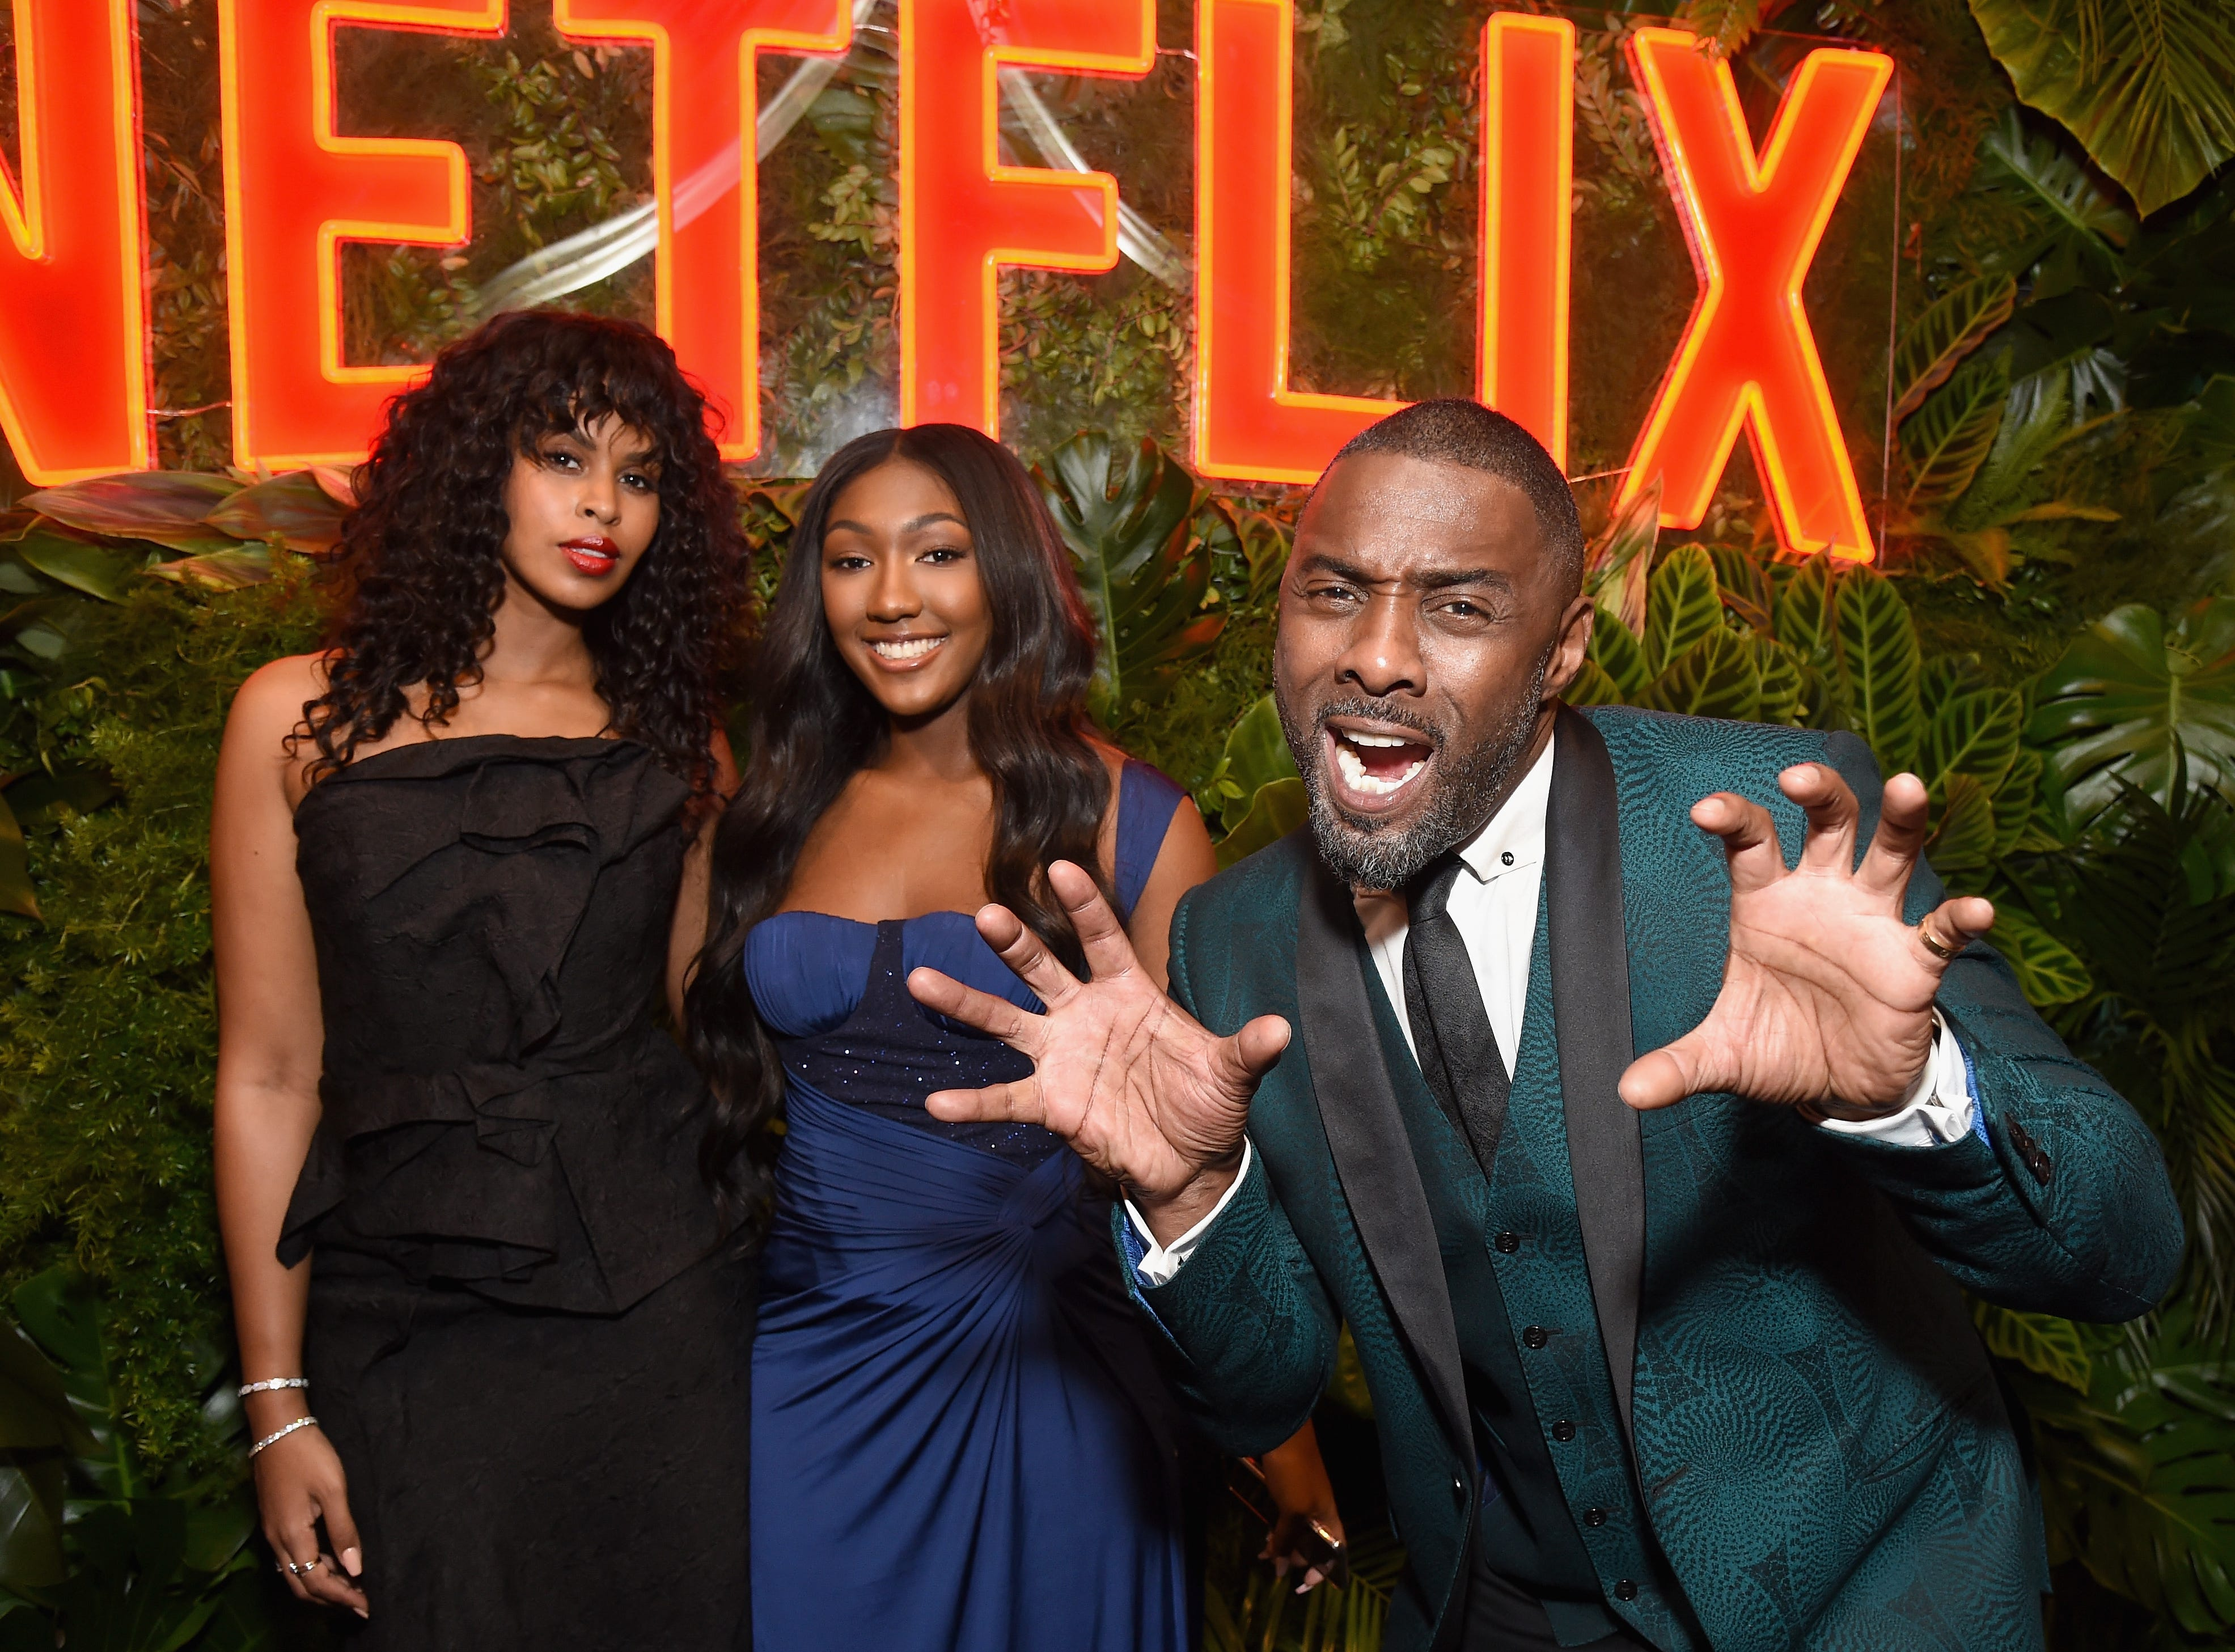 LOS ANGELES, CA - JANUARY 06:  (L-R) Sabrina Dhowre, Isan Elba, and Idris Elba attend the Netflix 2019 Golden Globes After Party on January 6, 2019 in Los Angeles, California.  (Photo by Tommaso Boddi/Getty Images for Netflix) ORG XMIT: 775263107 ORIG FILE ID: 1078630632